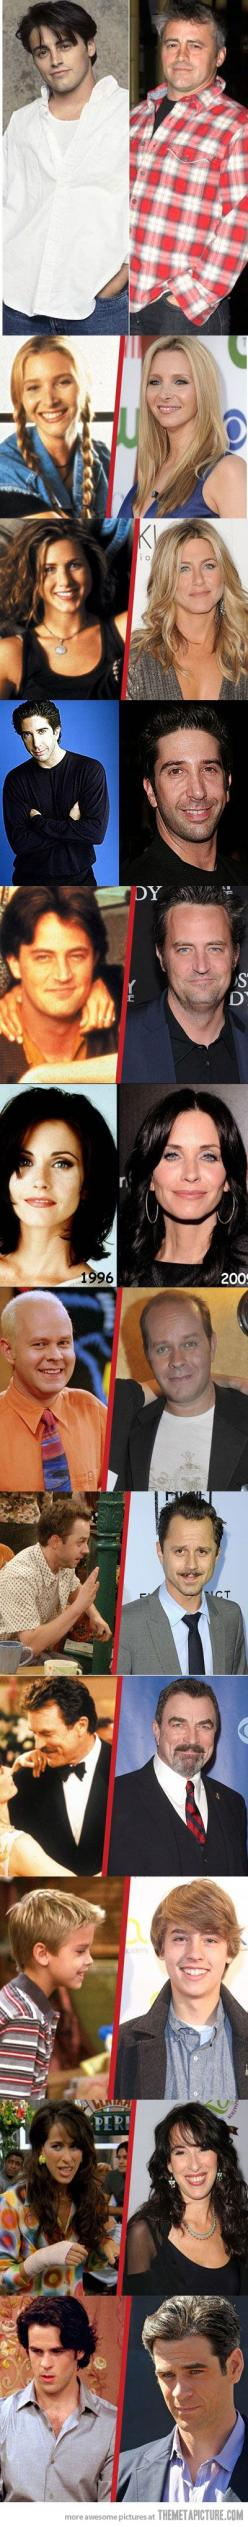 #FRIENDS | Then & Now: Friends Cast Then And Now, Friends Best, Friends I Ll, Friends Tv, Friends Cast Now, Friends Joey, Aw Friends, Friends Then And Now